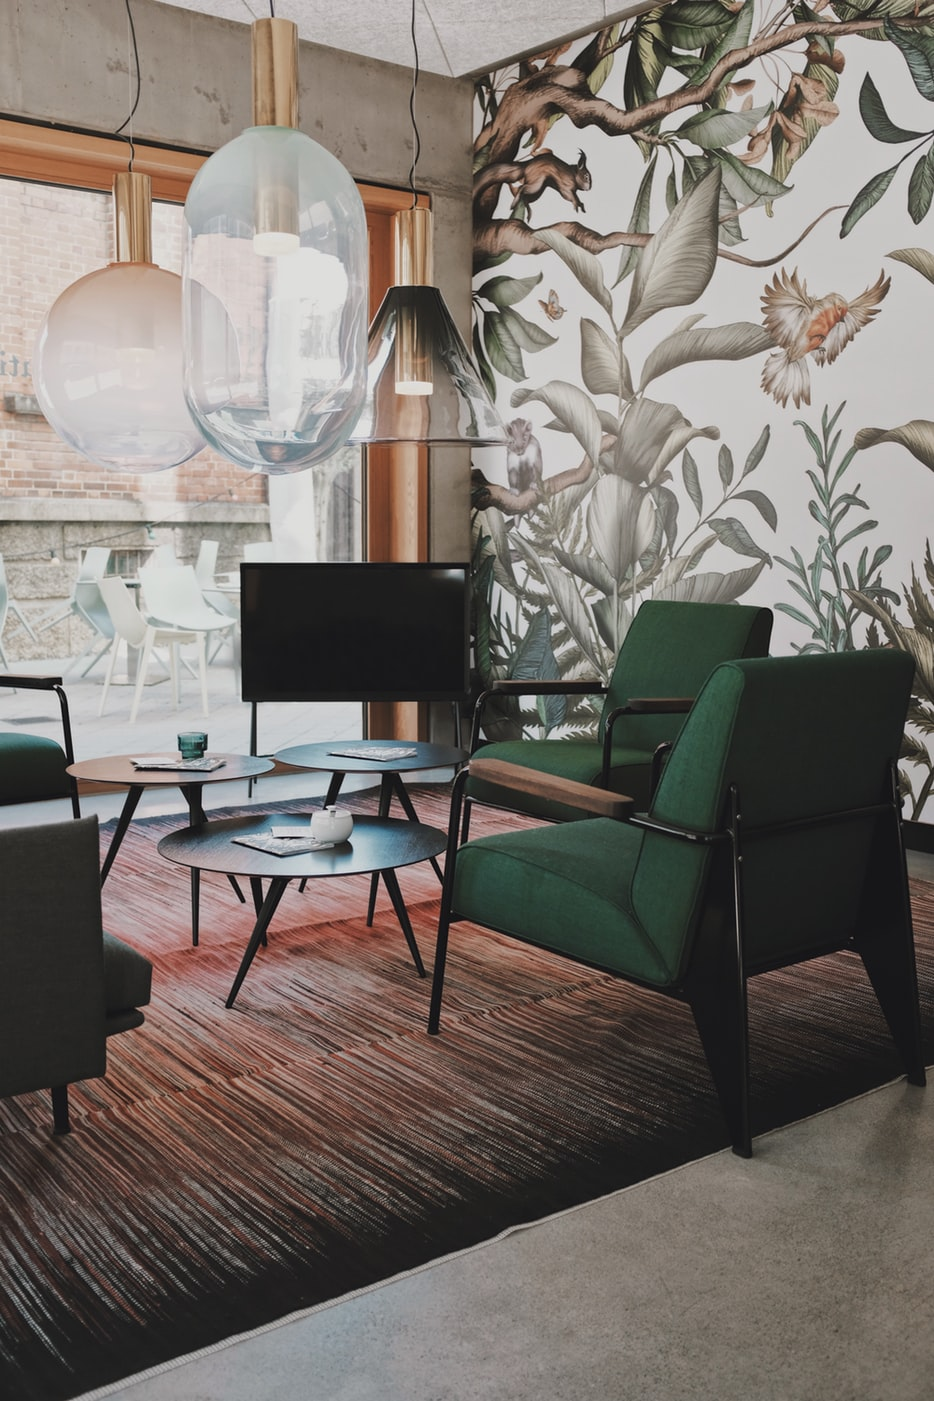 Best Interior Design Tips Part 4 What To Do With Your Walls Form Function